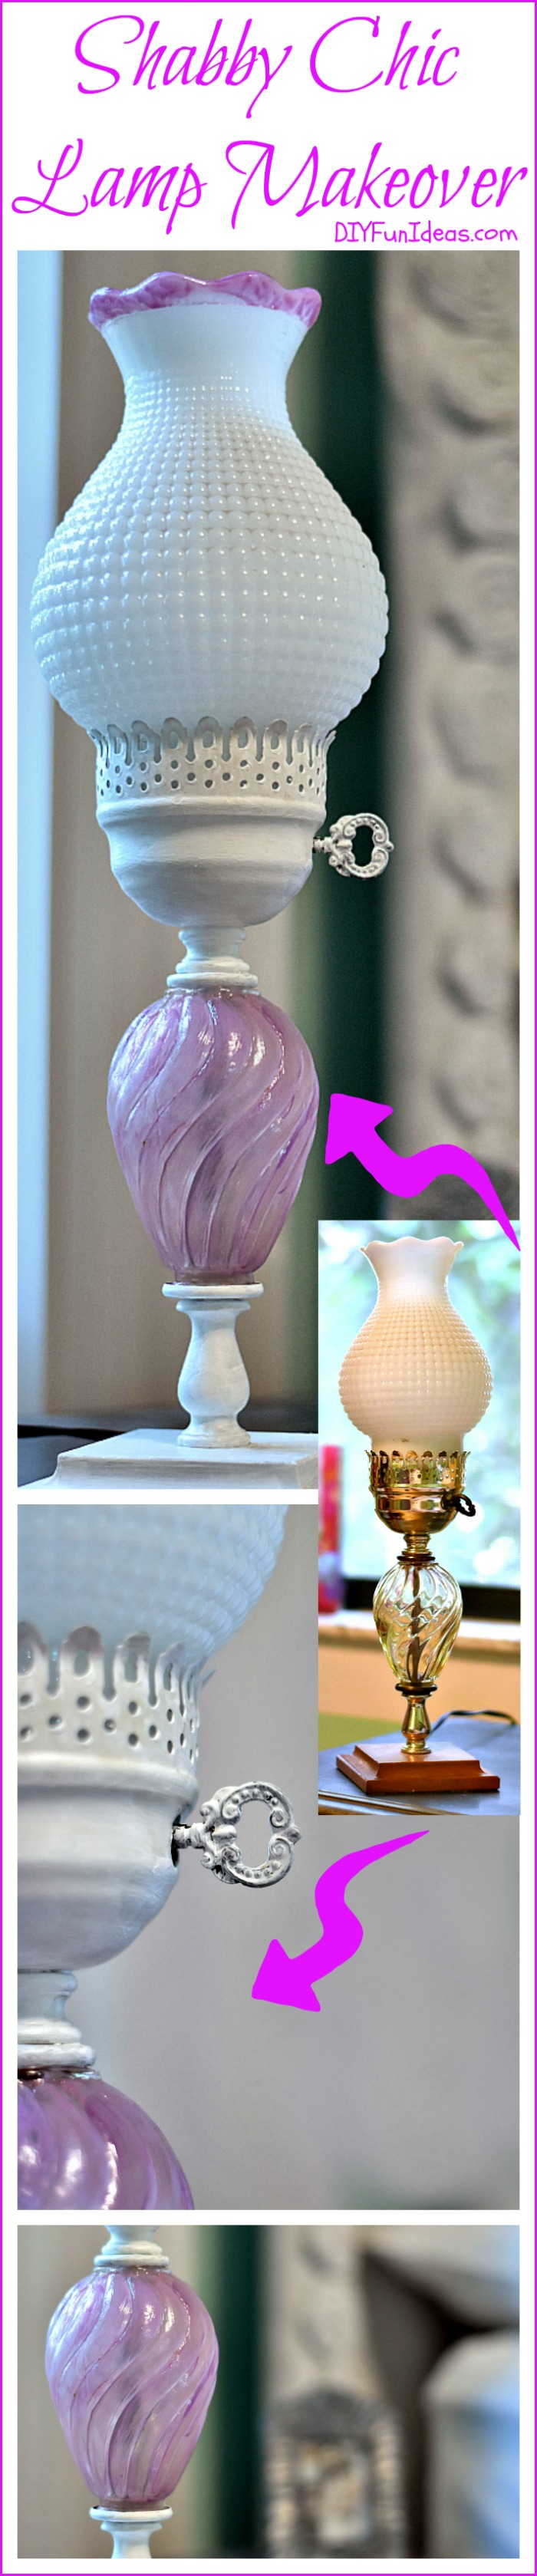 DIY SUPER CUTE SHABBY CHIC LAMP MAKEOVER